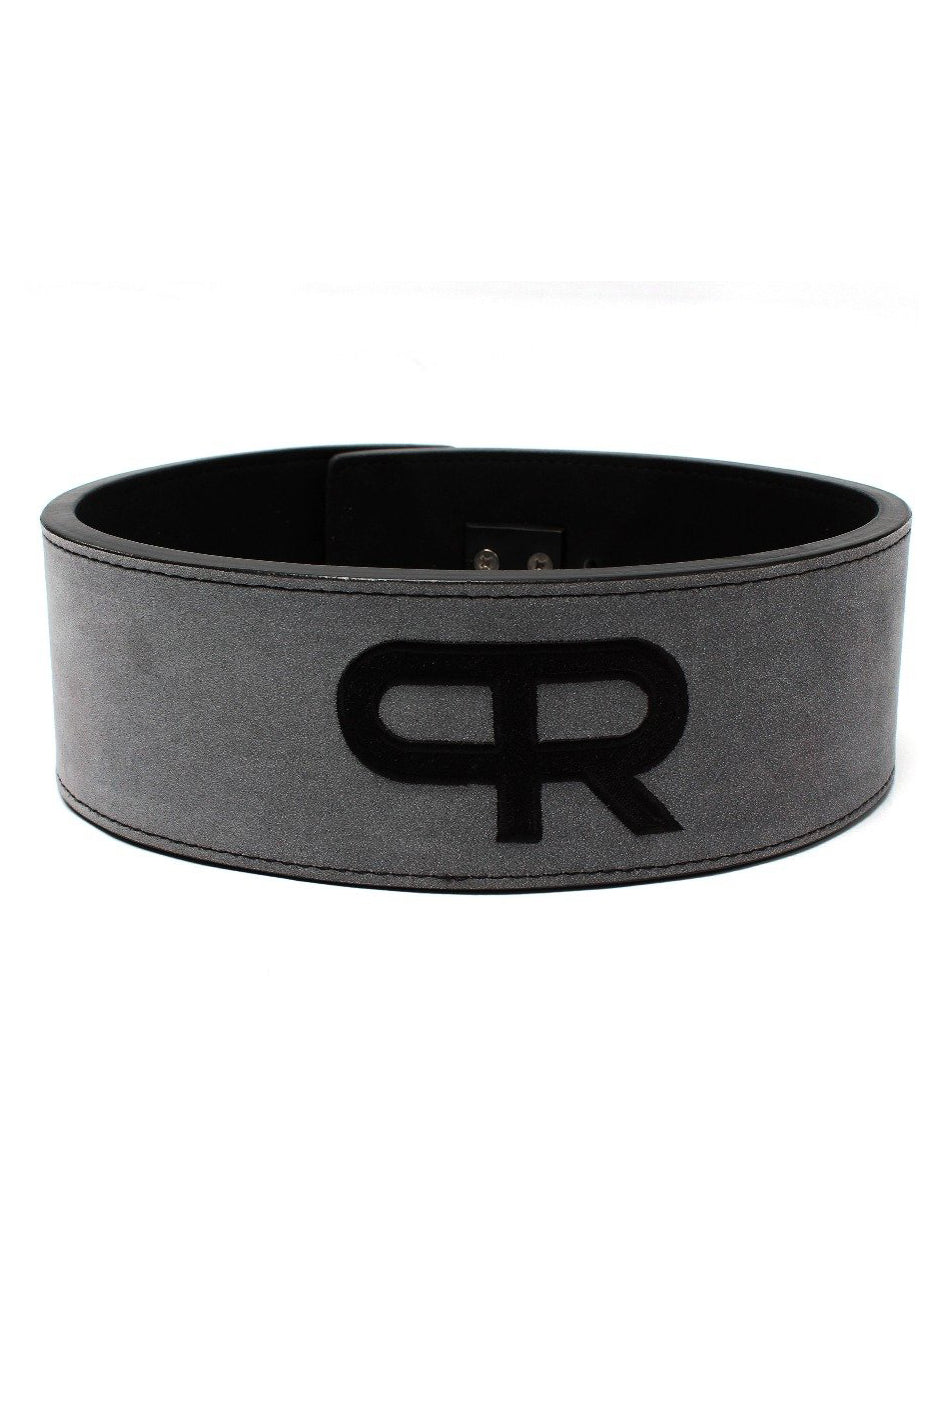 PR Powerlifting 10mm Belt w/ Lever Buckle - Grey/Black